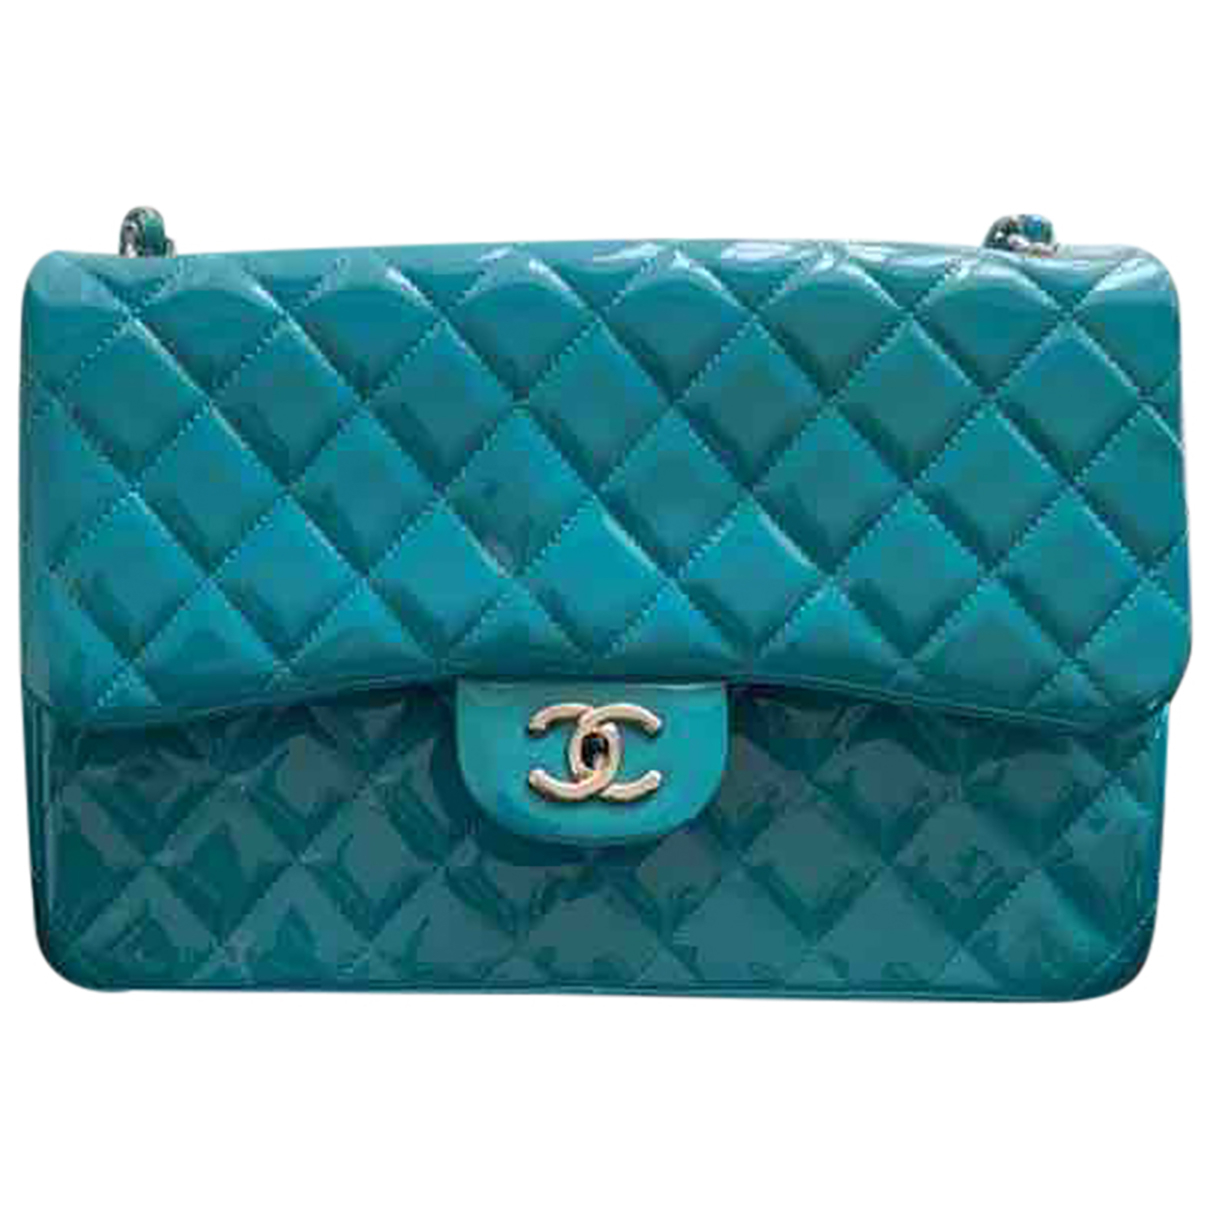 Chanel Timeless/Classique Blue Patent leather handbag for Women N